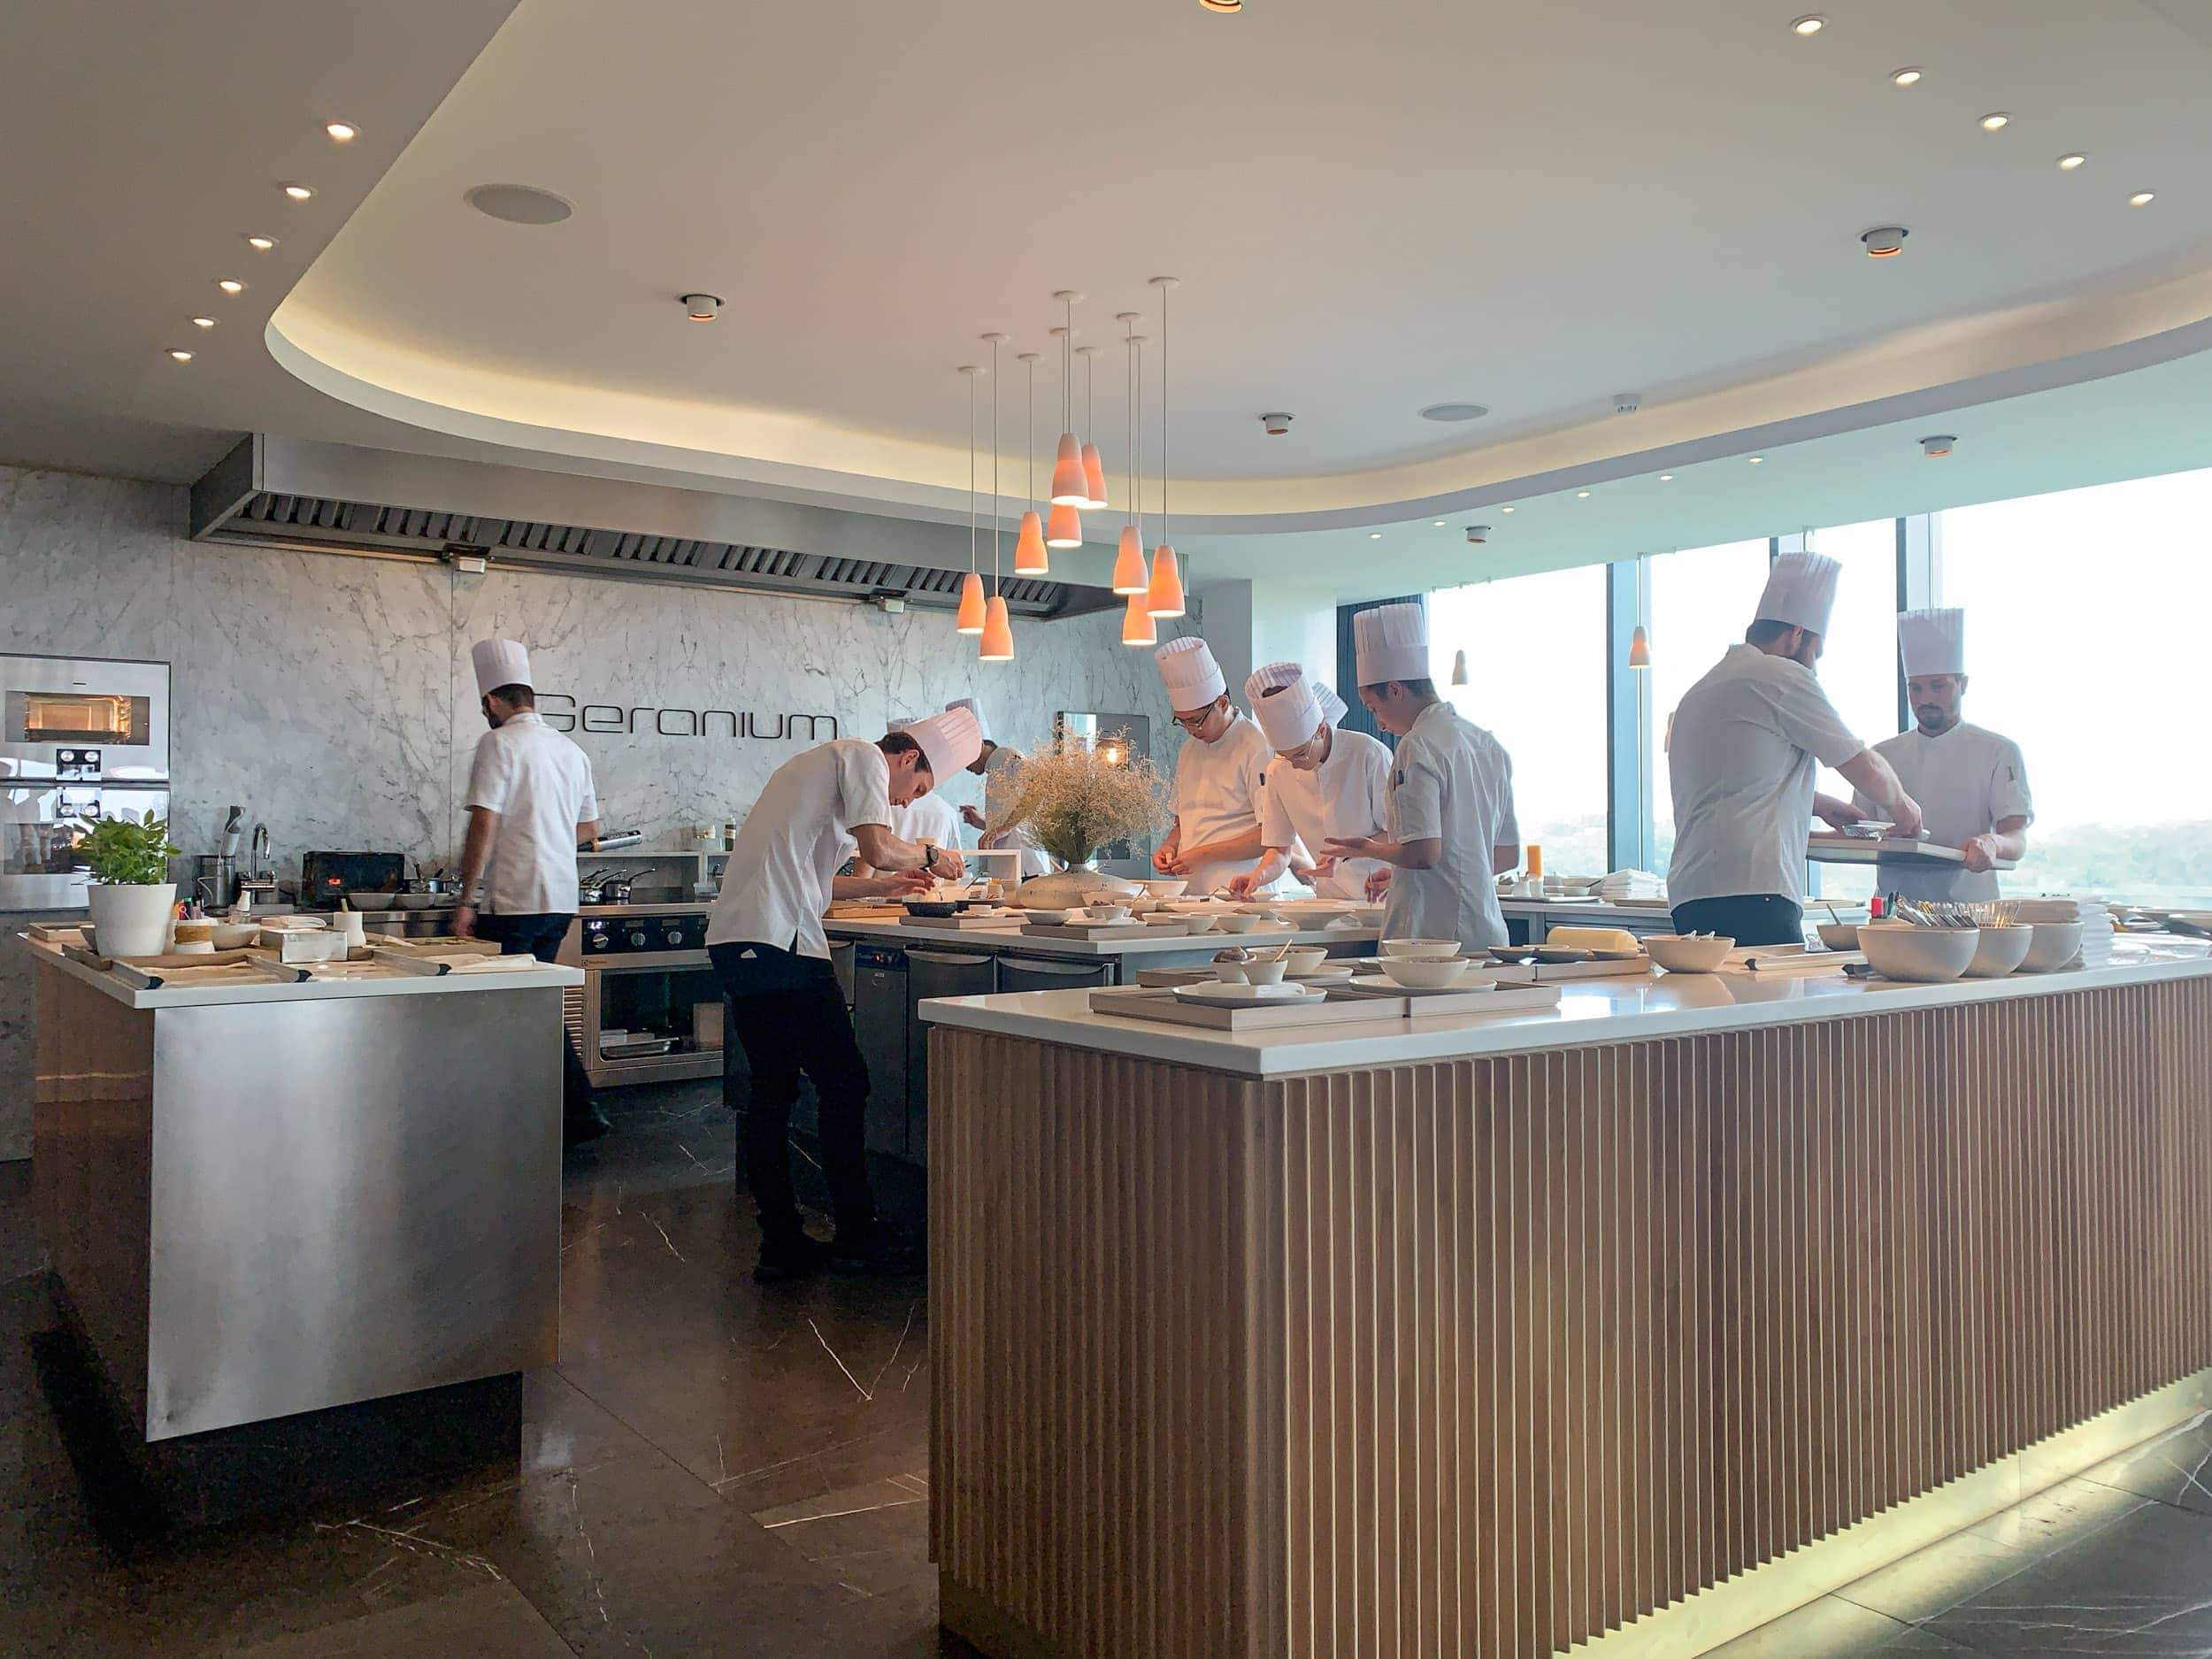 The open kitchen at Geranium